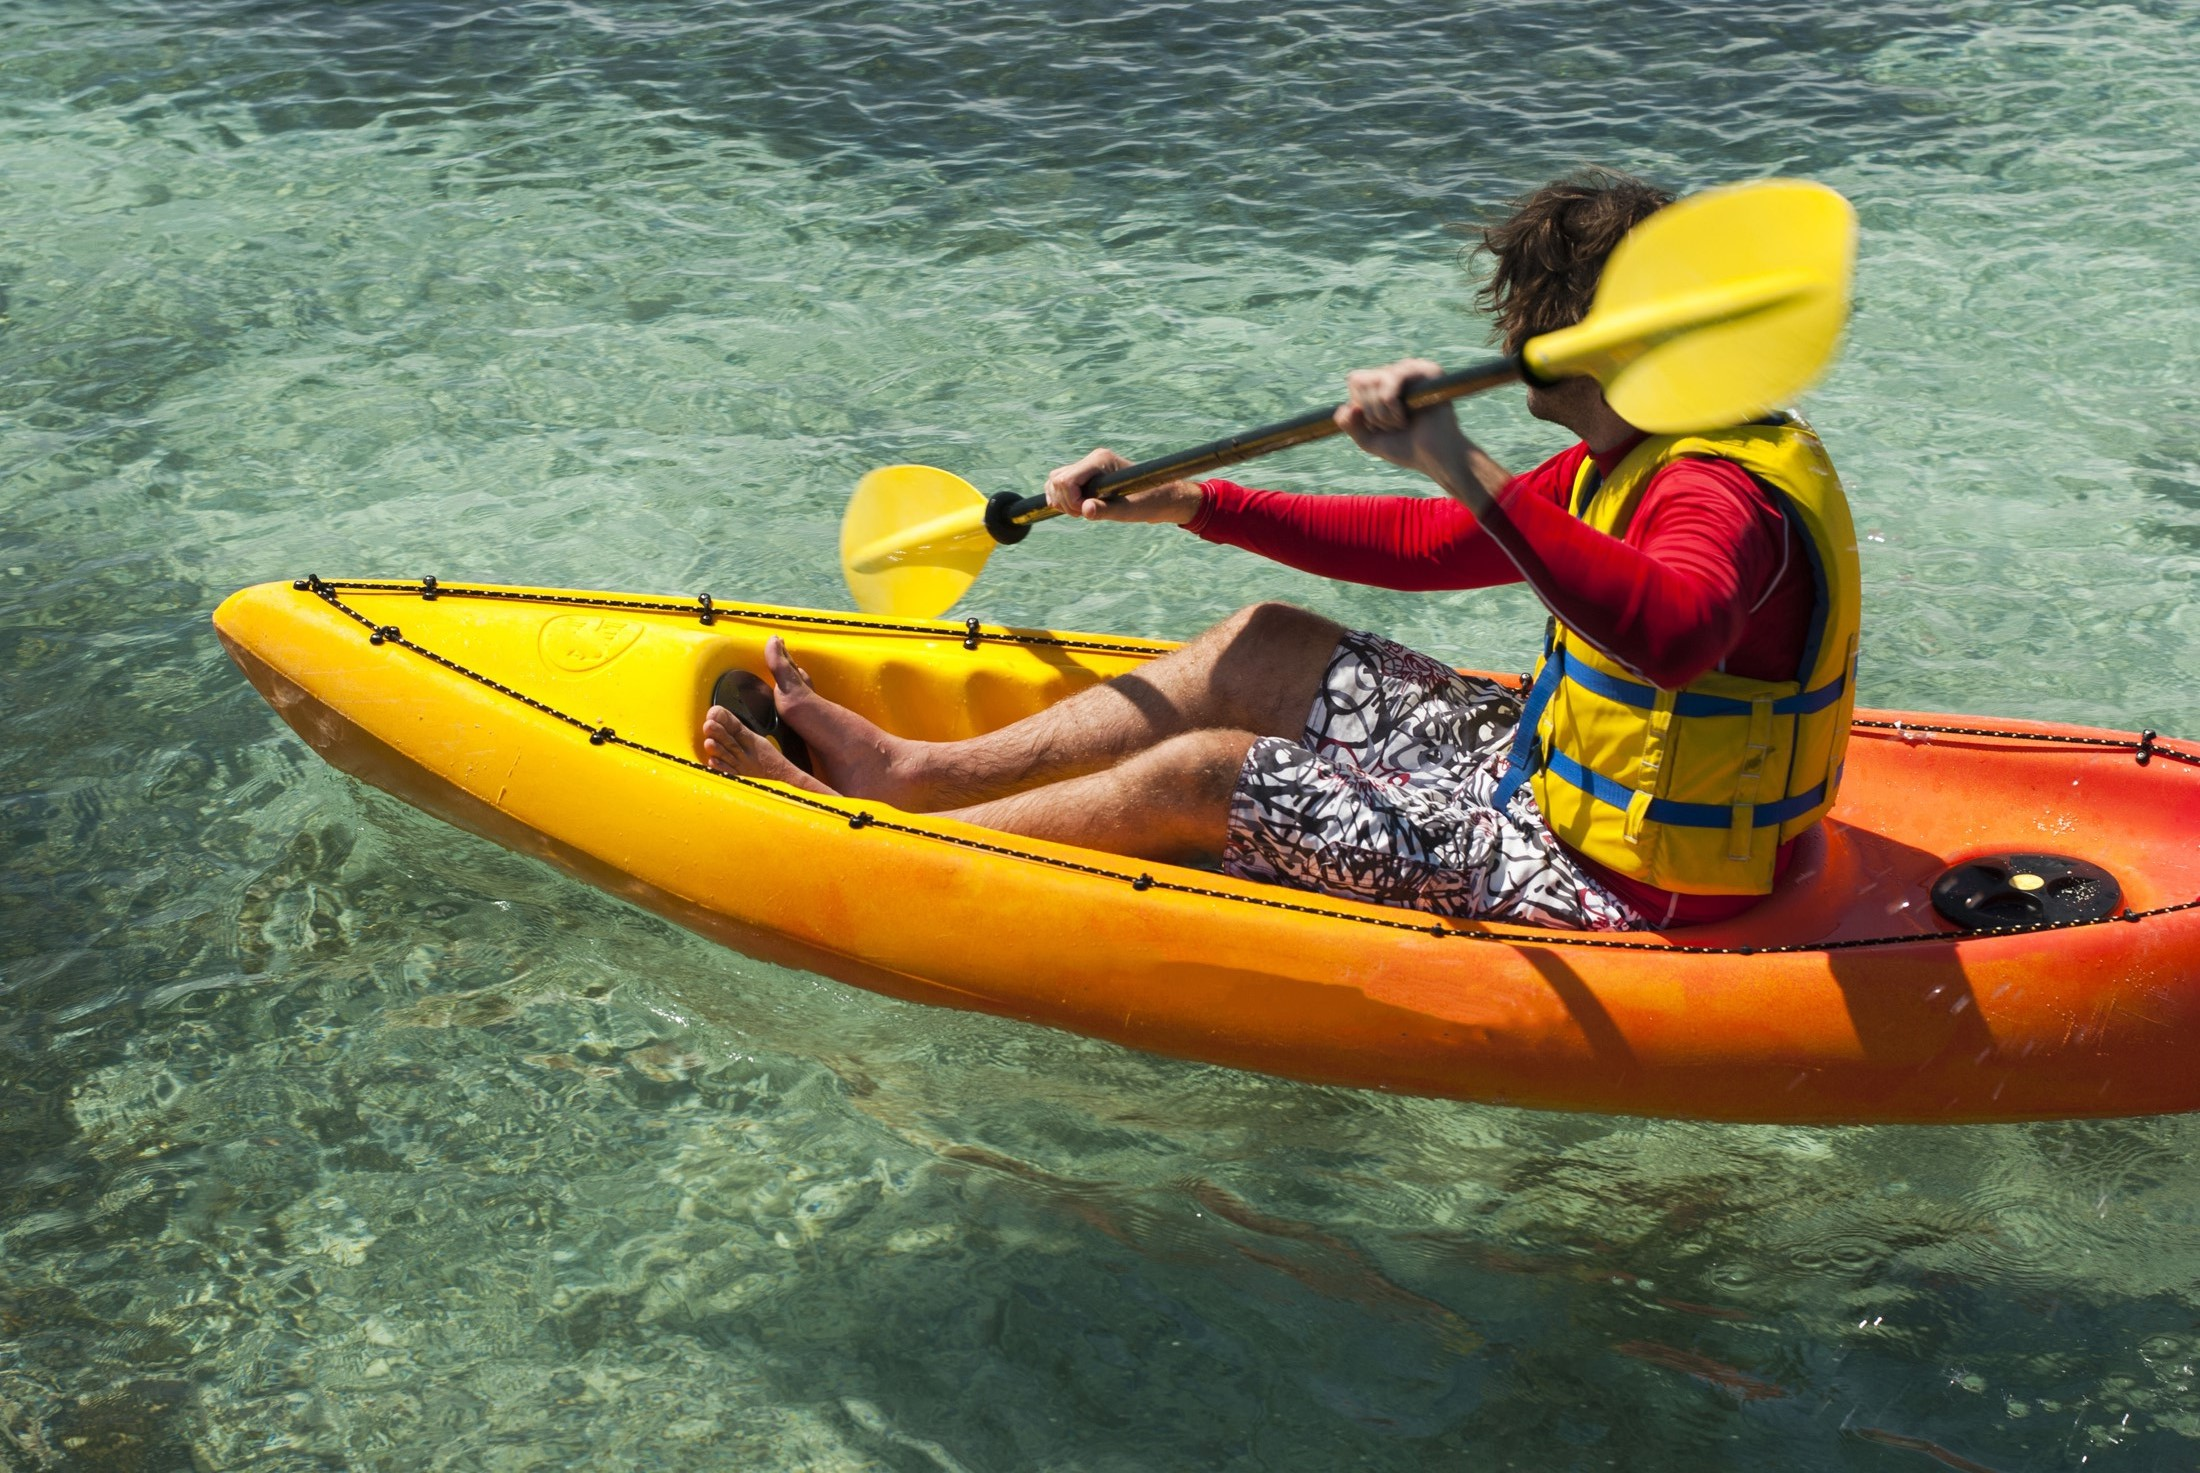 Kayaker in a small single kayak or canoe paddling in clear tropical water enjoying his summer vacation